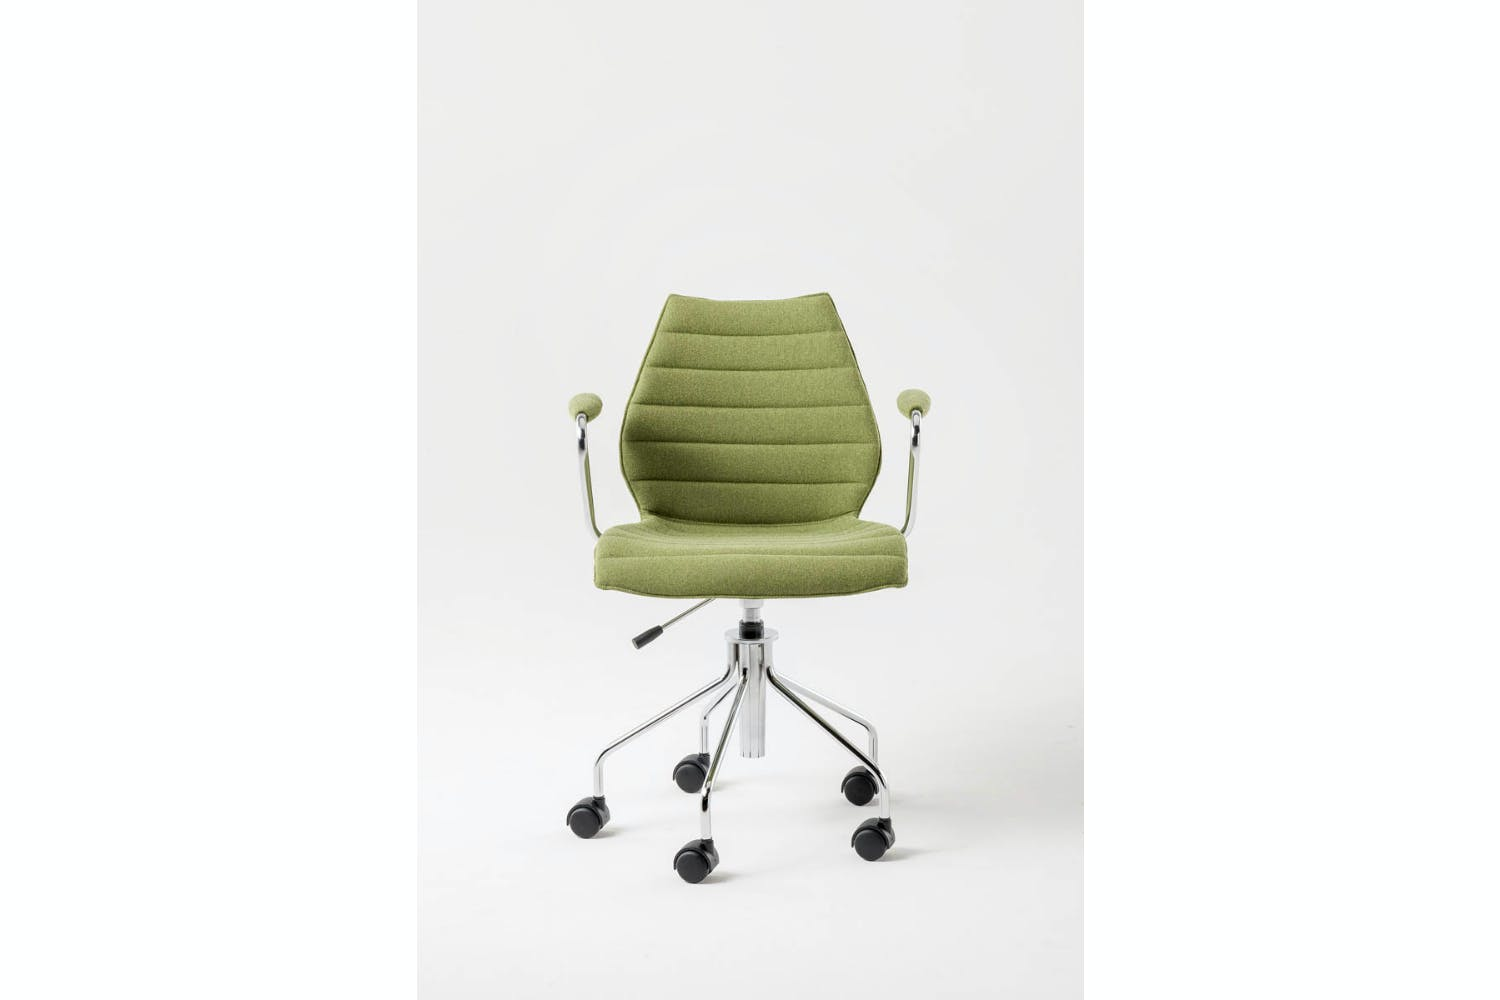 Maui soft office chair tribute to vico magistretti for kartell space furniture